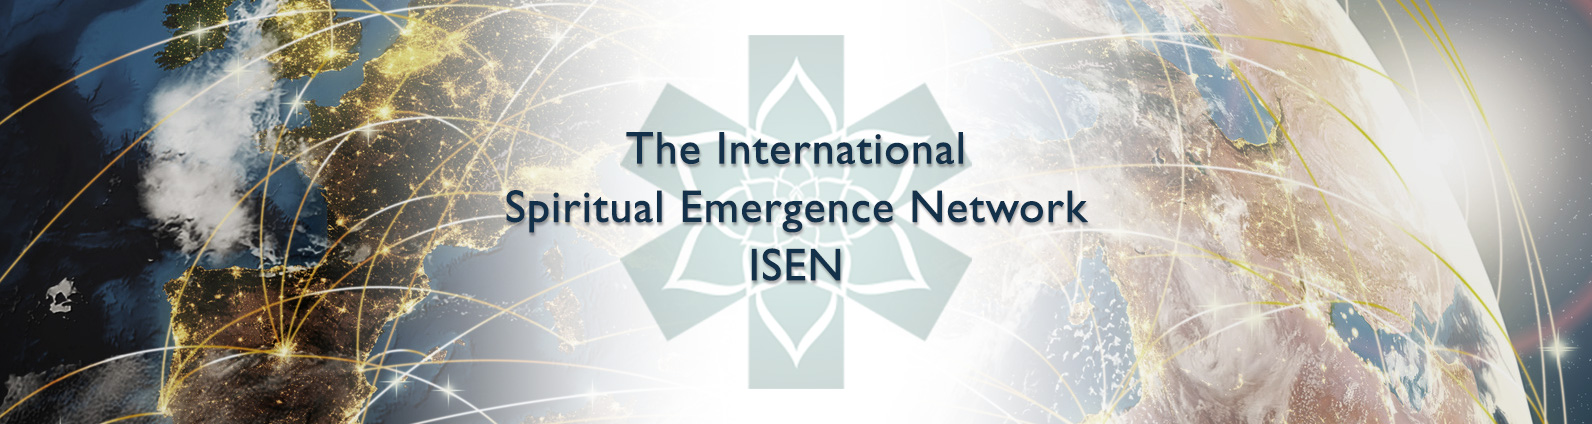 The International Spiritual Emergence Network